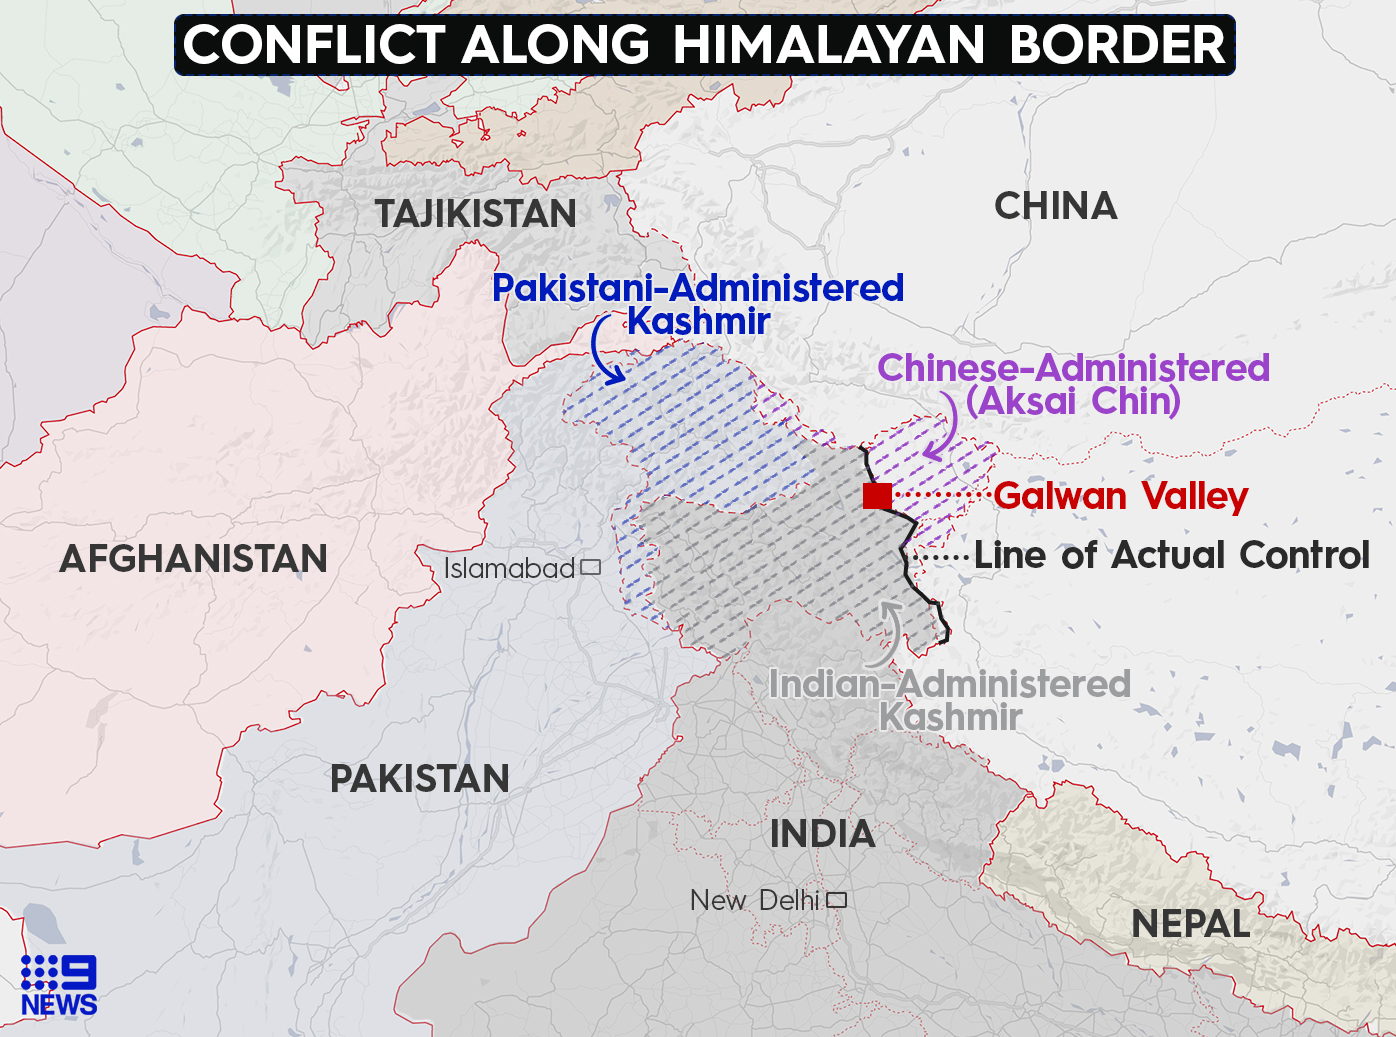 Map showing the area where tensions are running high between China and India.